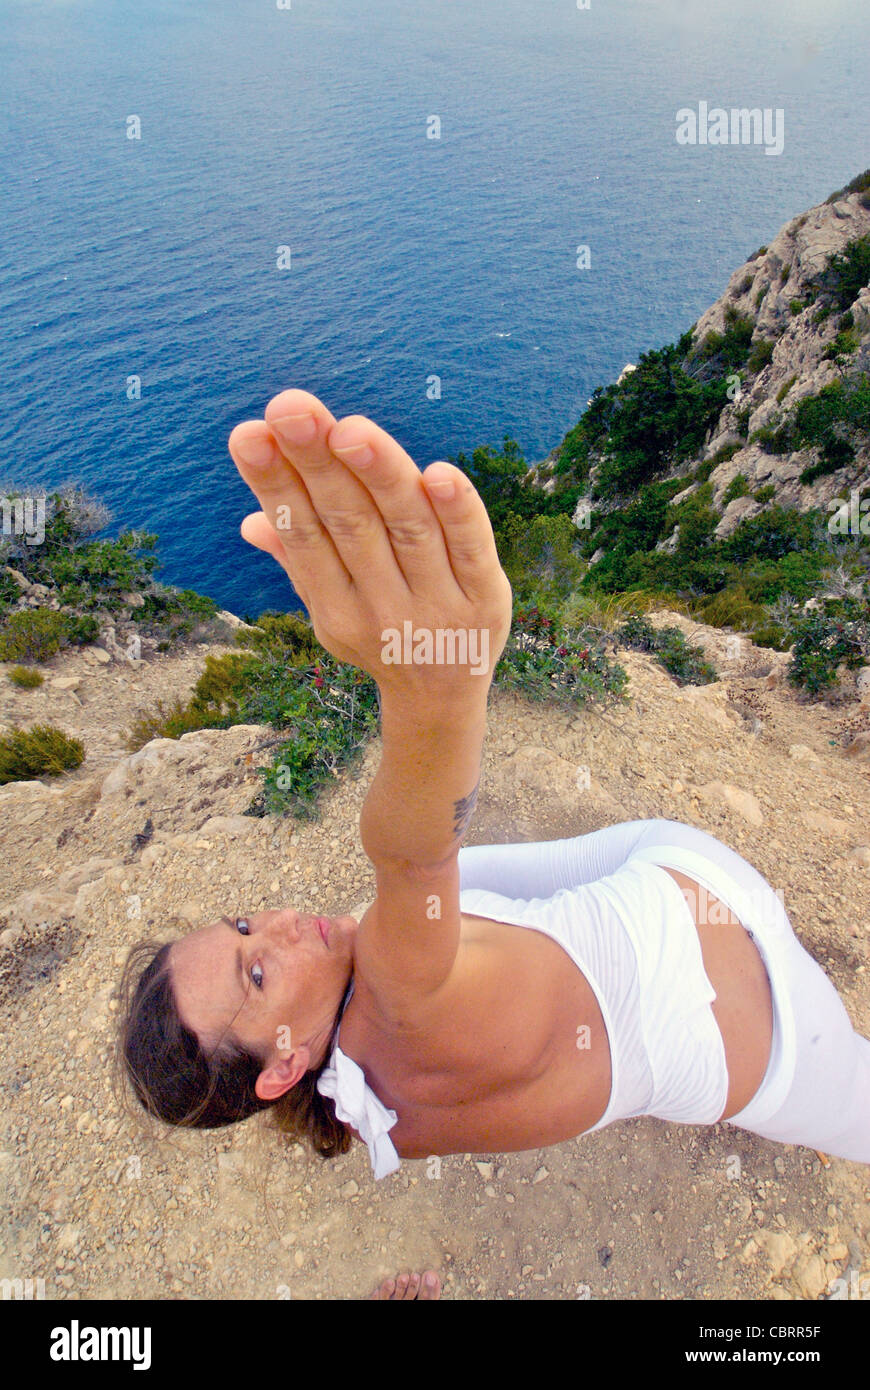 Model Released: Attractive young woman, artist Lena Tancredi, practicing yoga in front of the Mediterranean Sea, - Stock Image